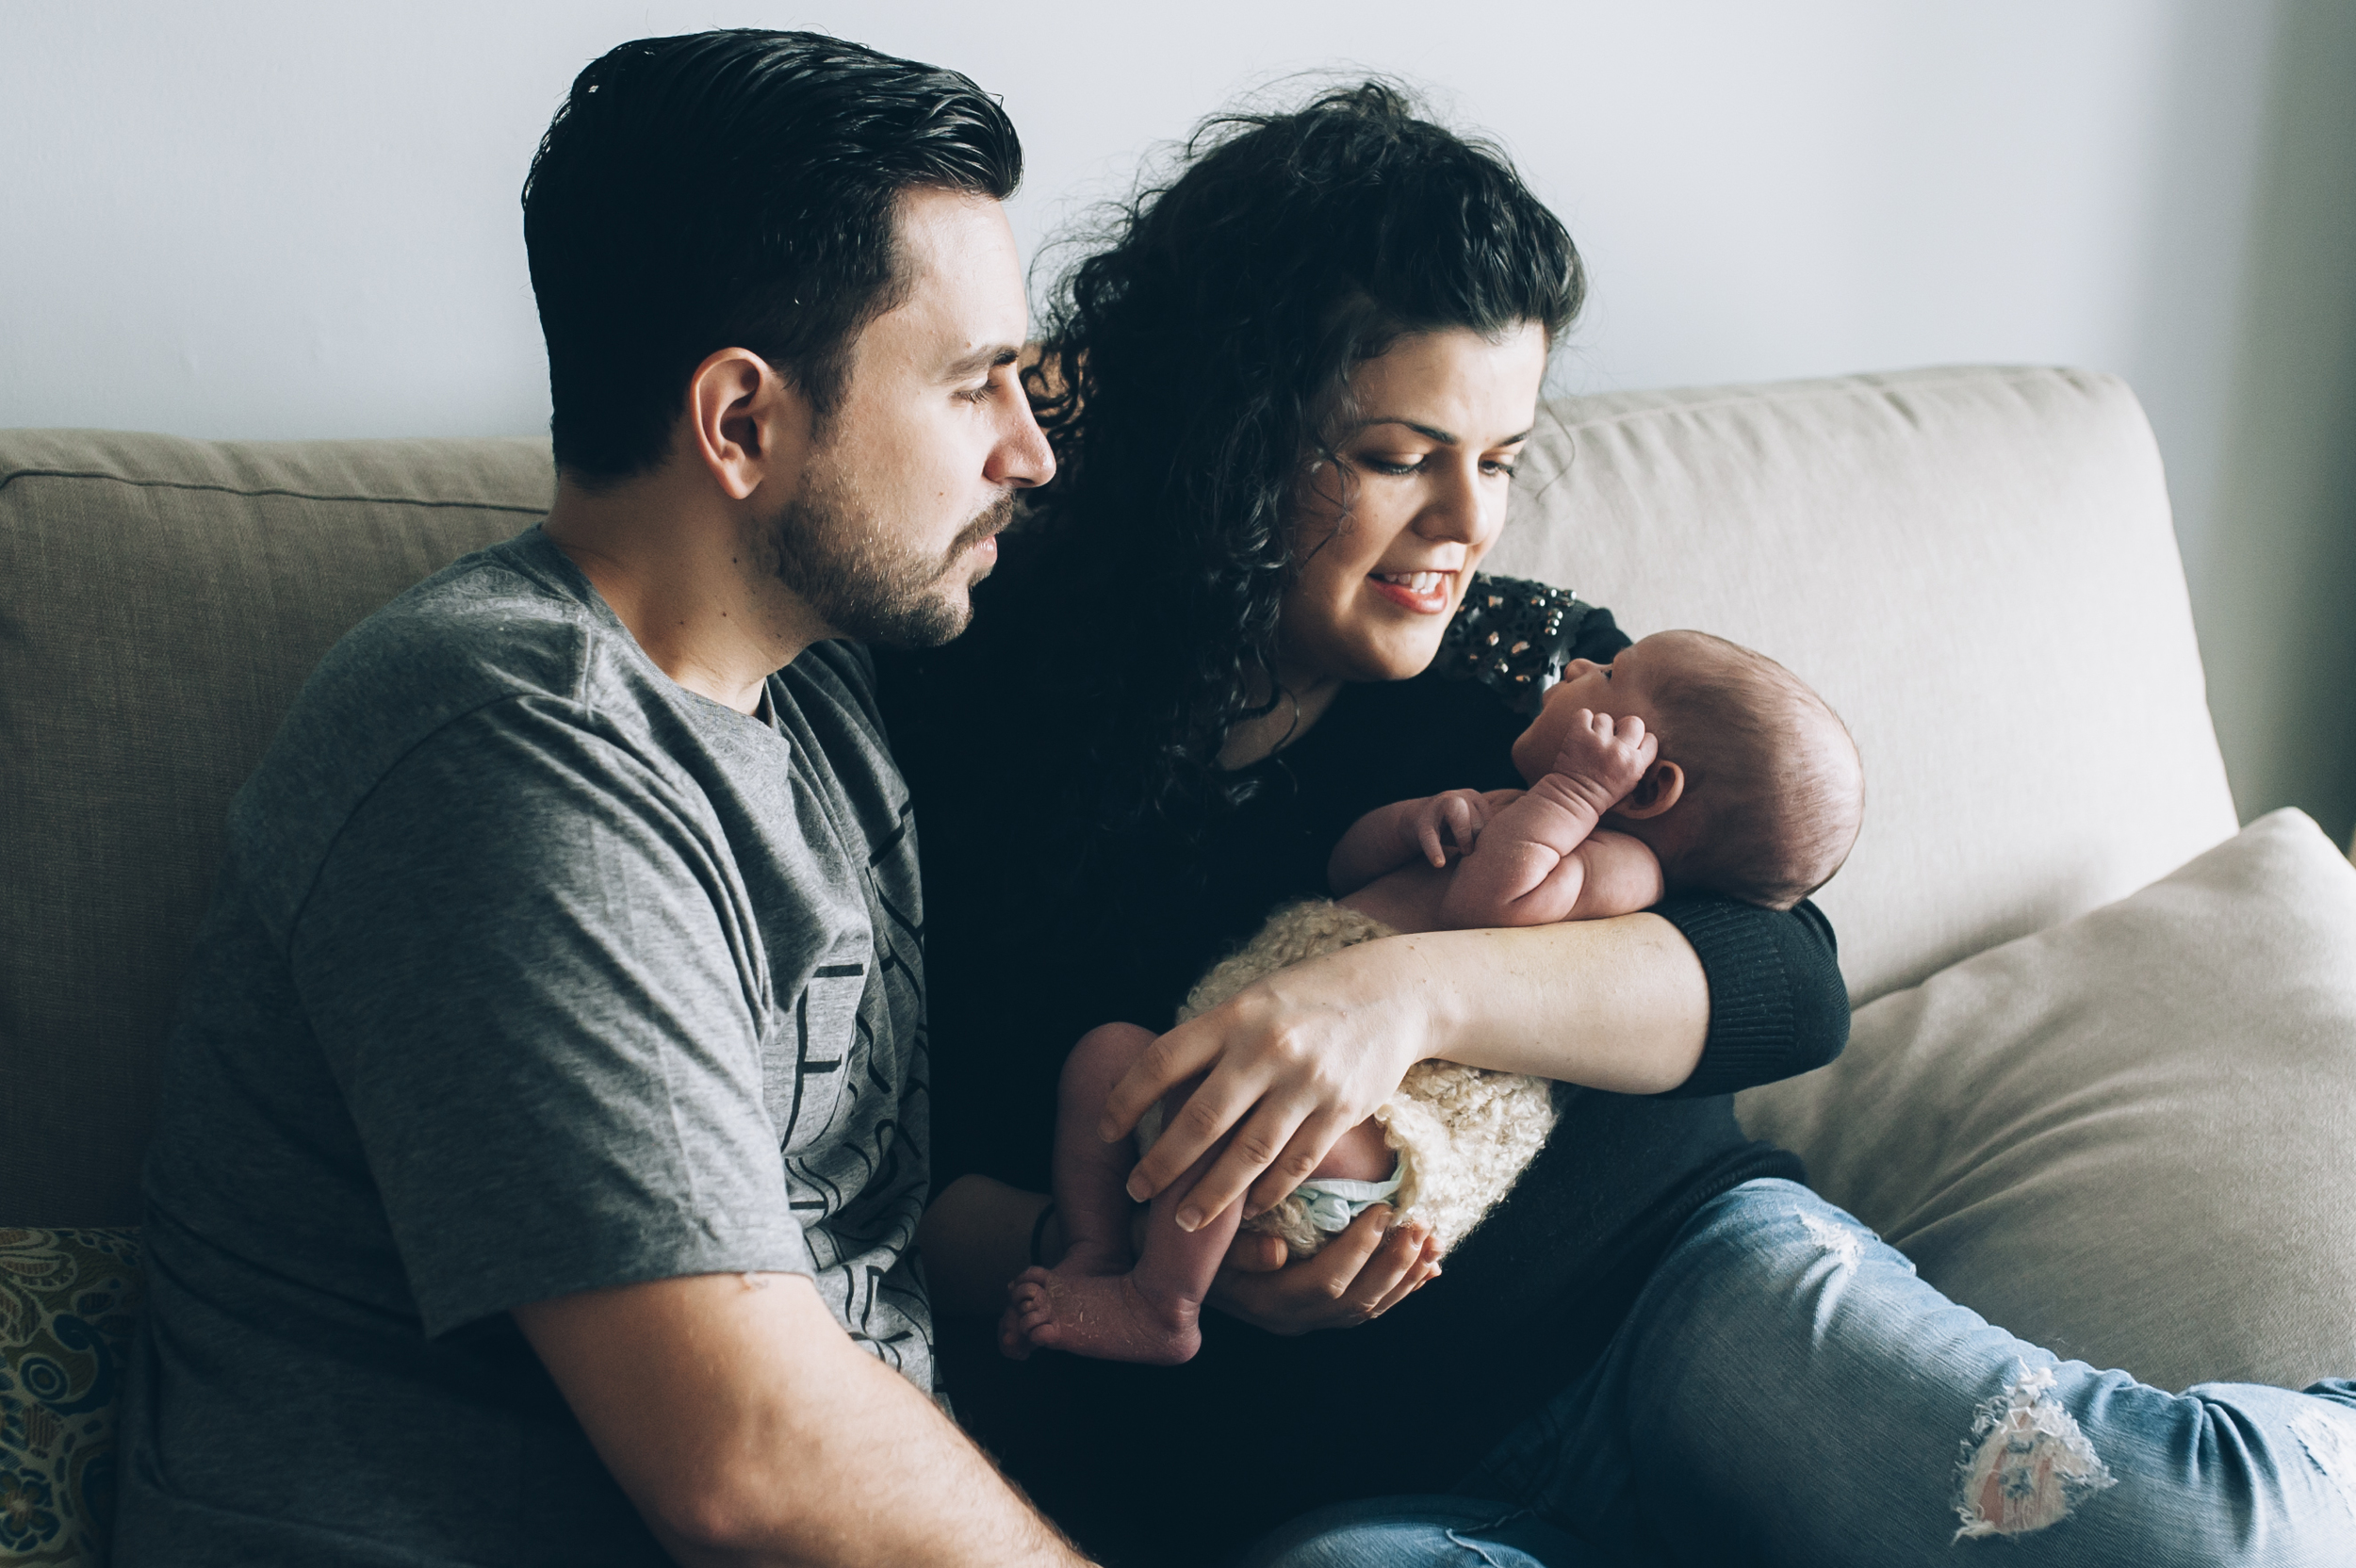 lifestyle photographer, lifestyle photography, Burlington, Newborn, lifestyle